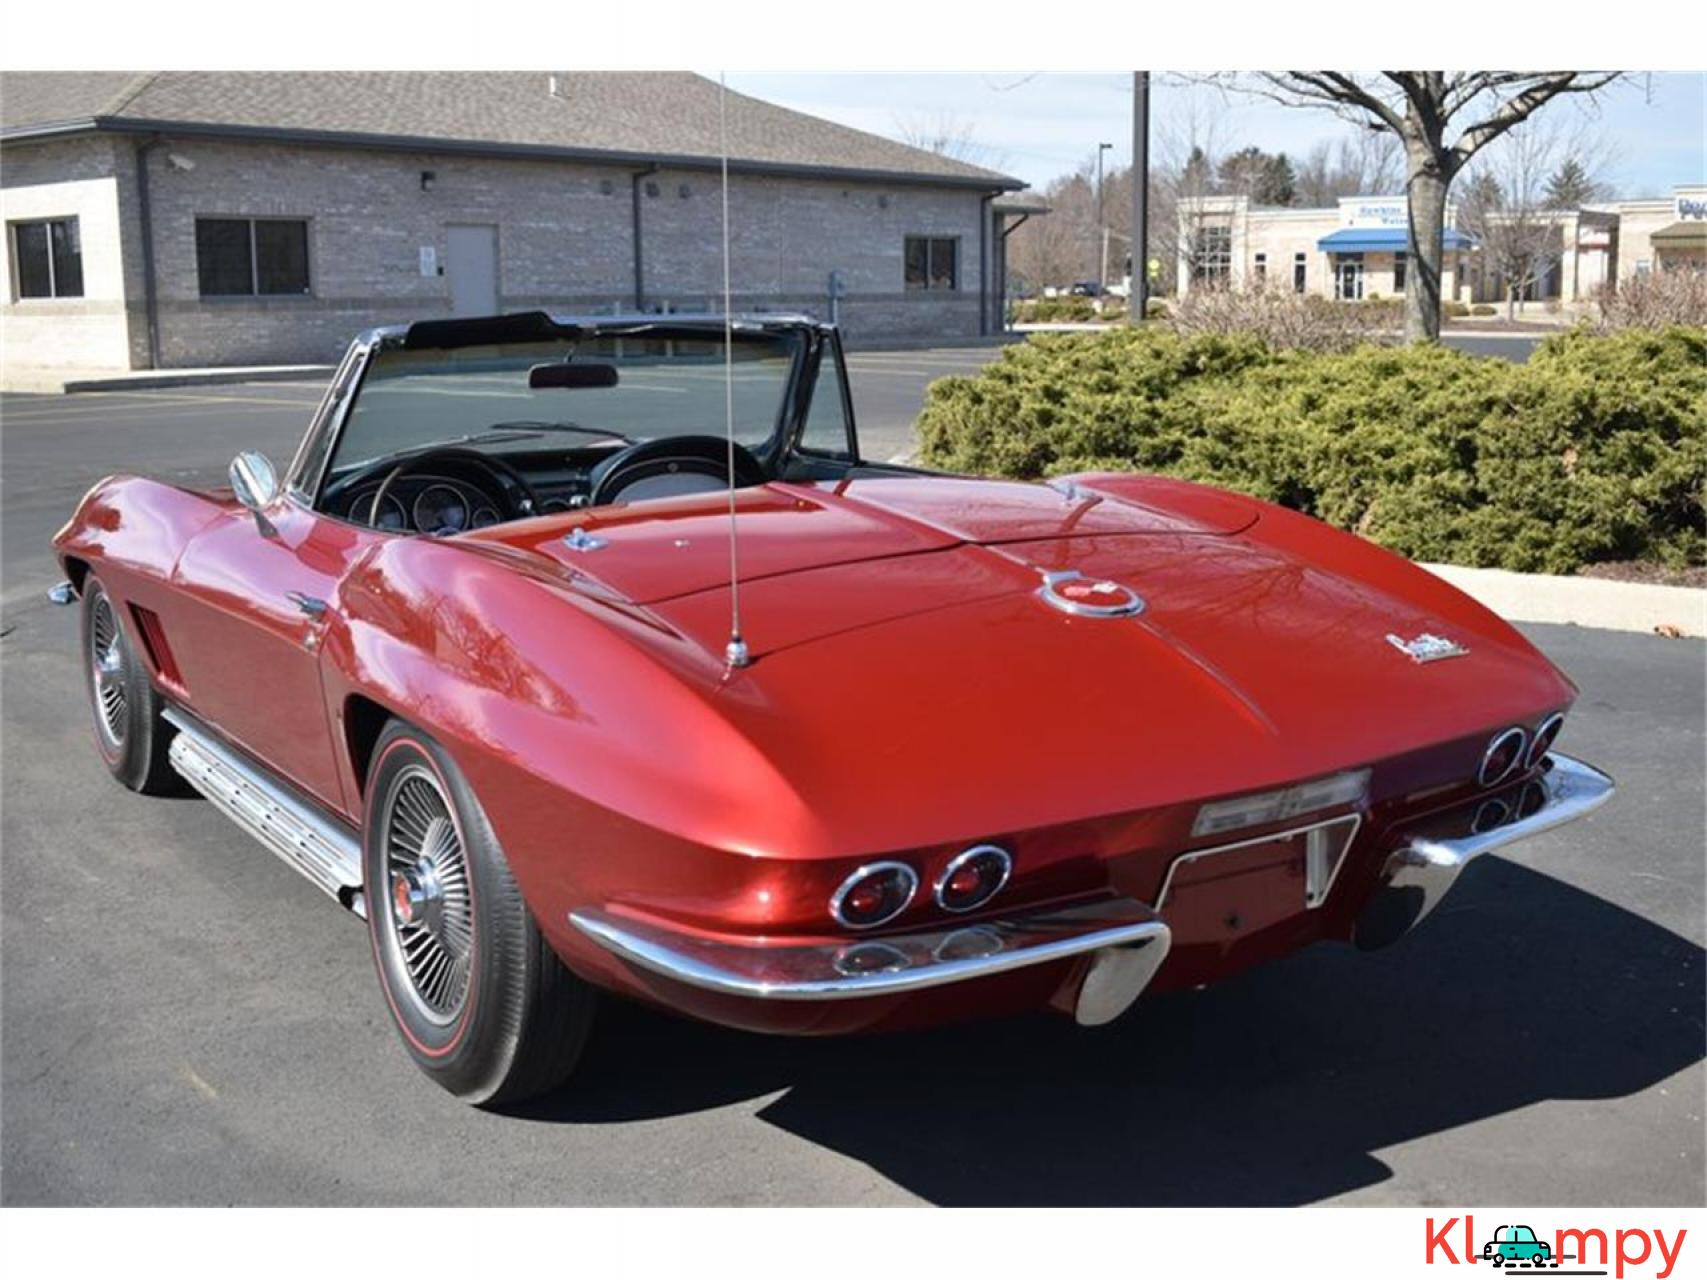 1967 Chevrolet Corvette 350HP 327 Cu In V8 - 2/20